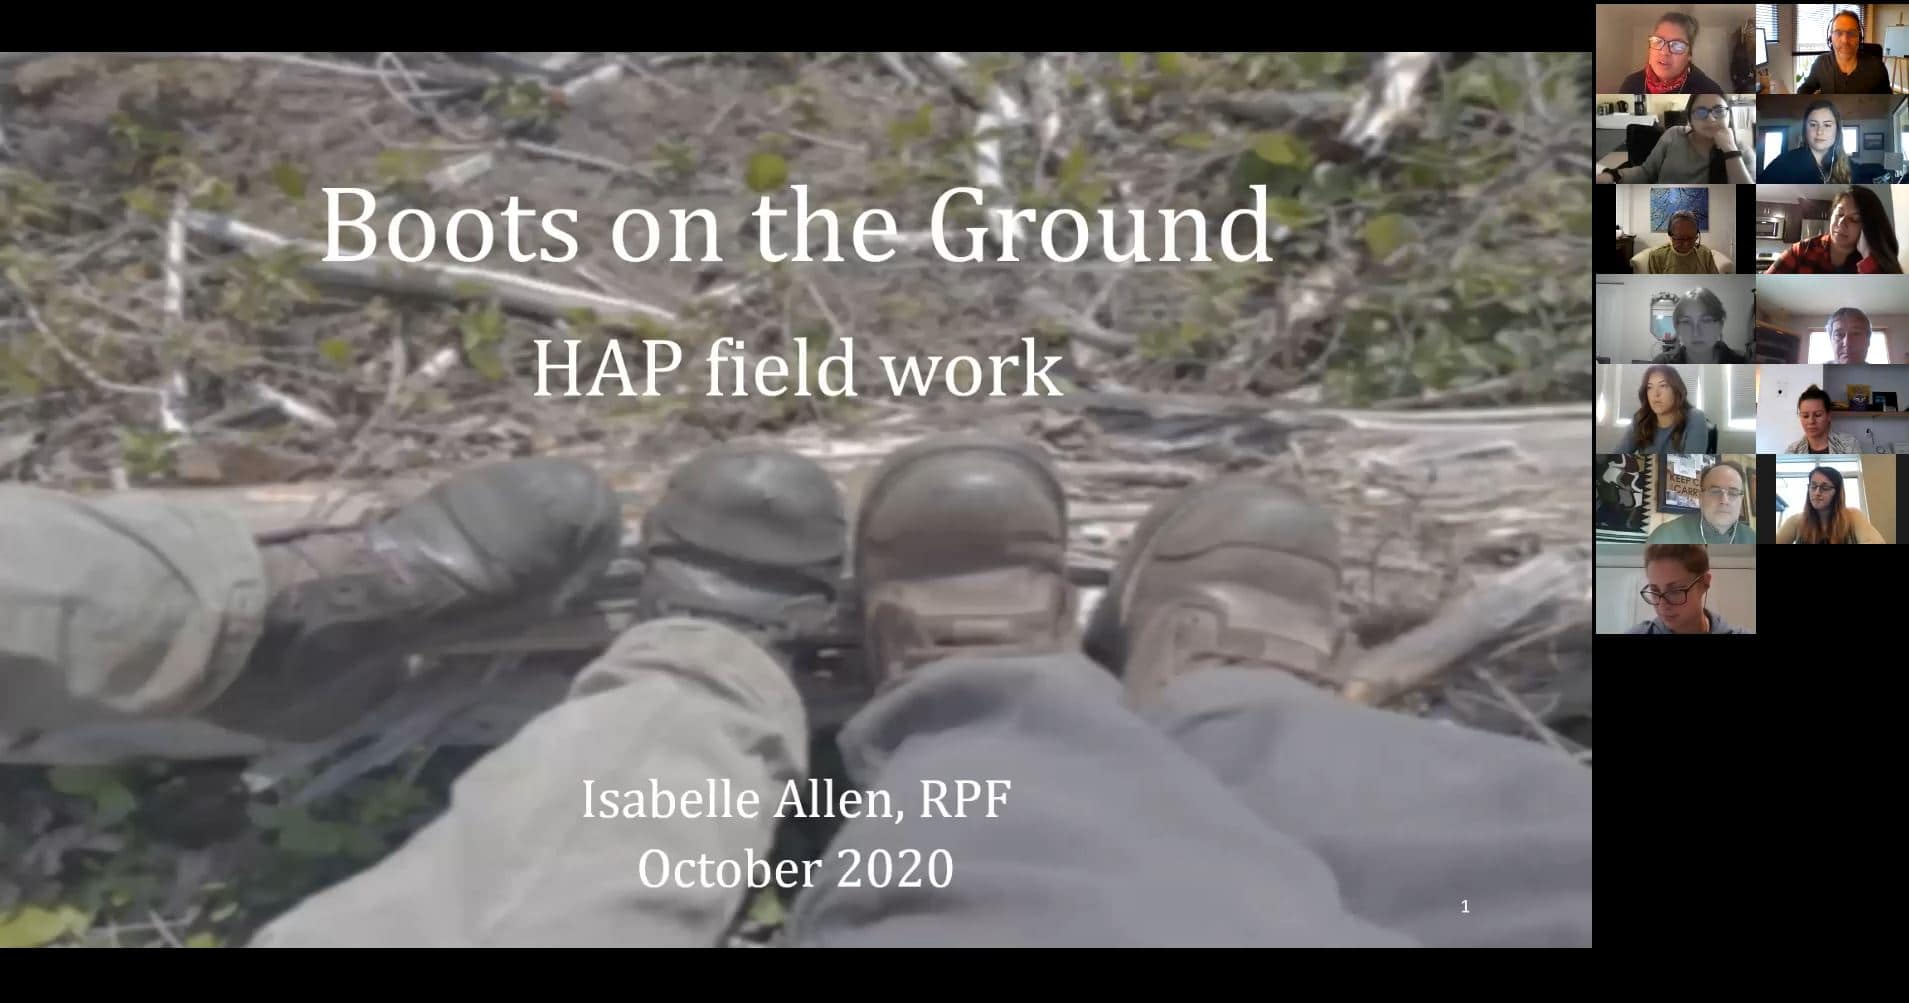 October 2020 - Boots on the Ground